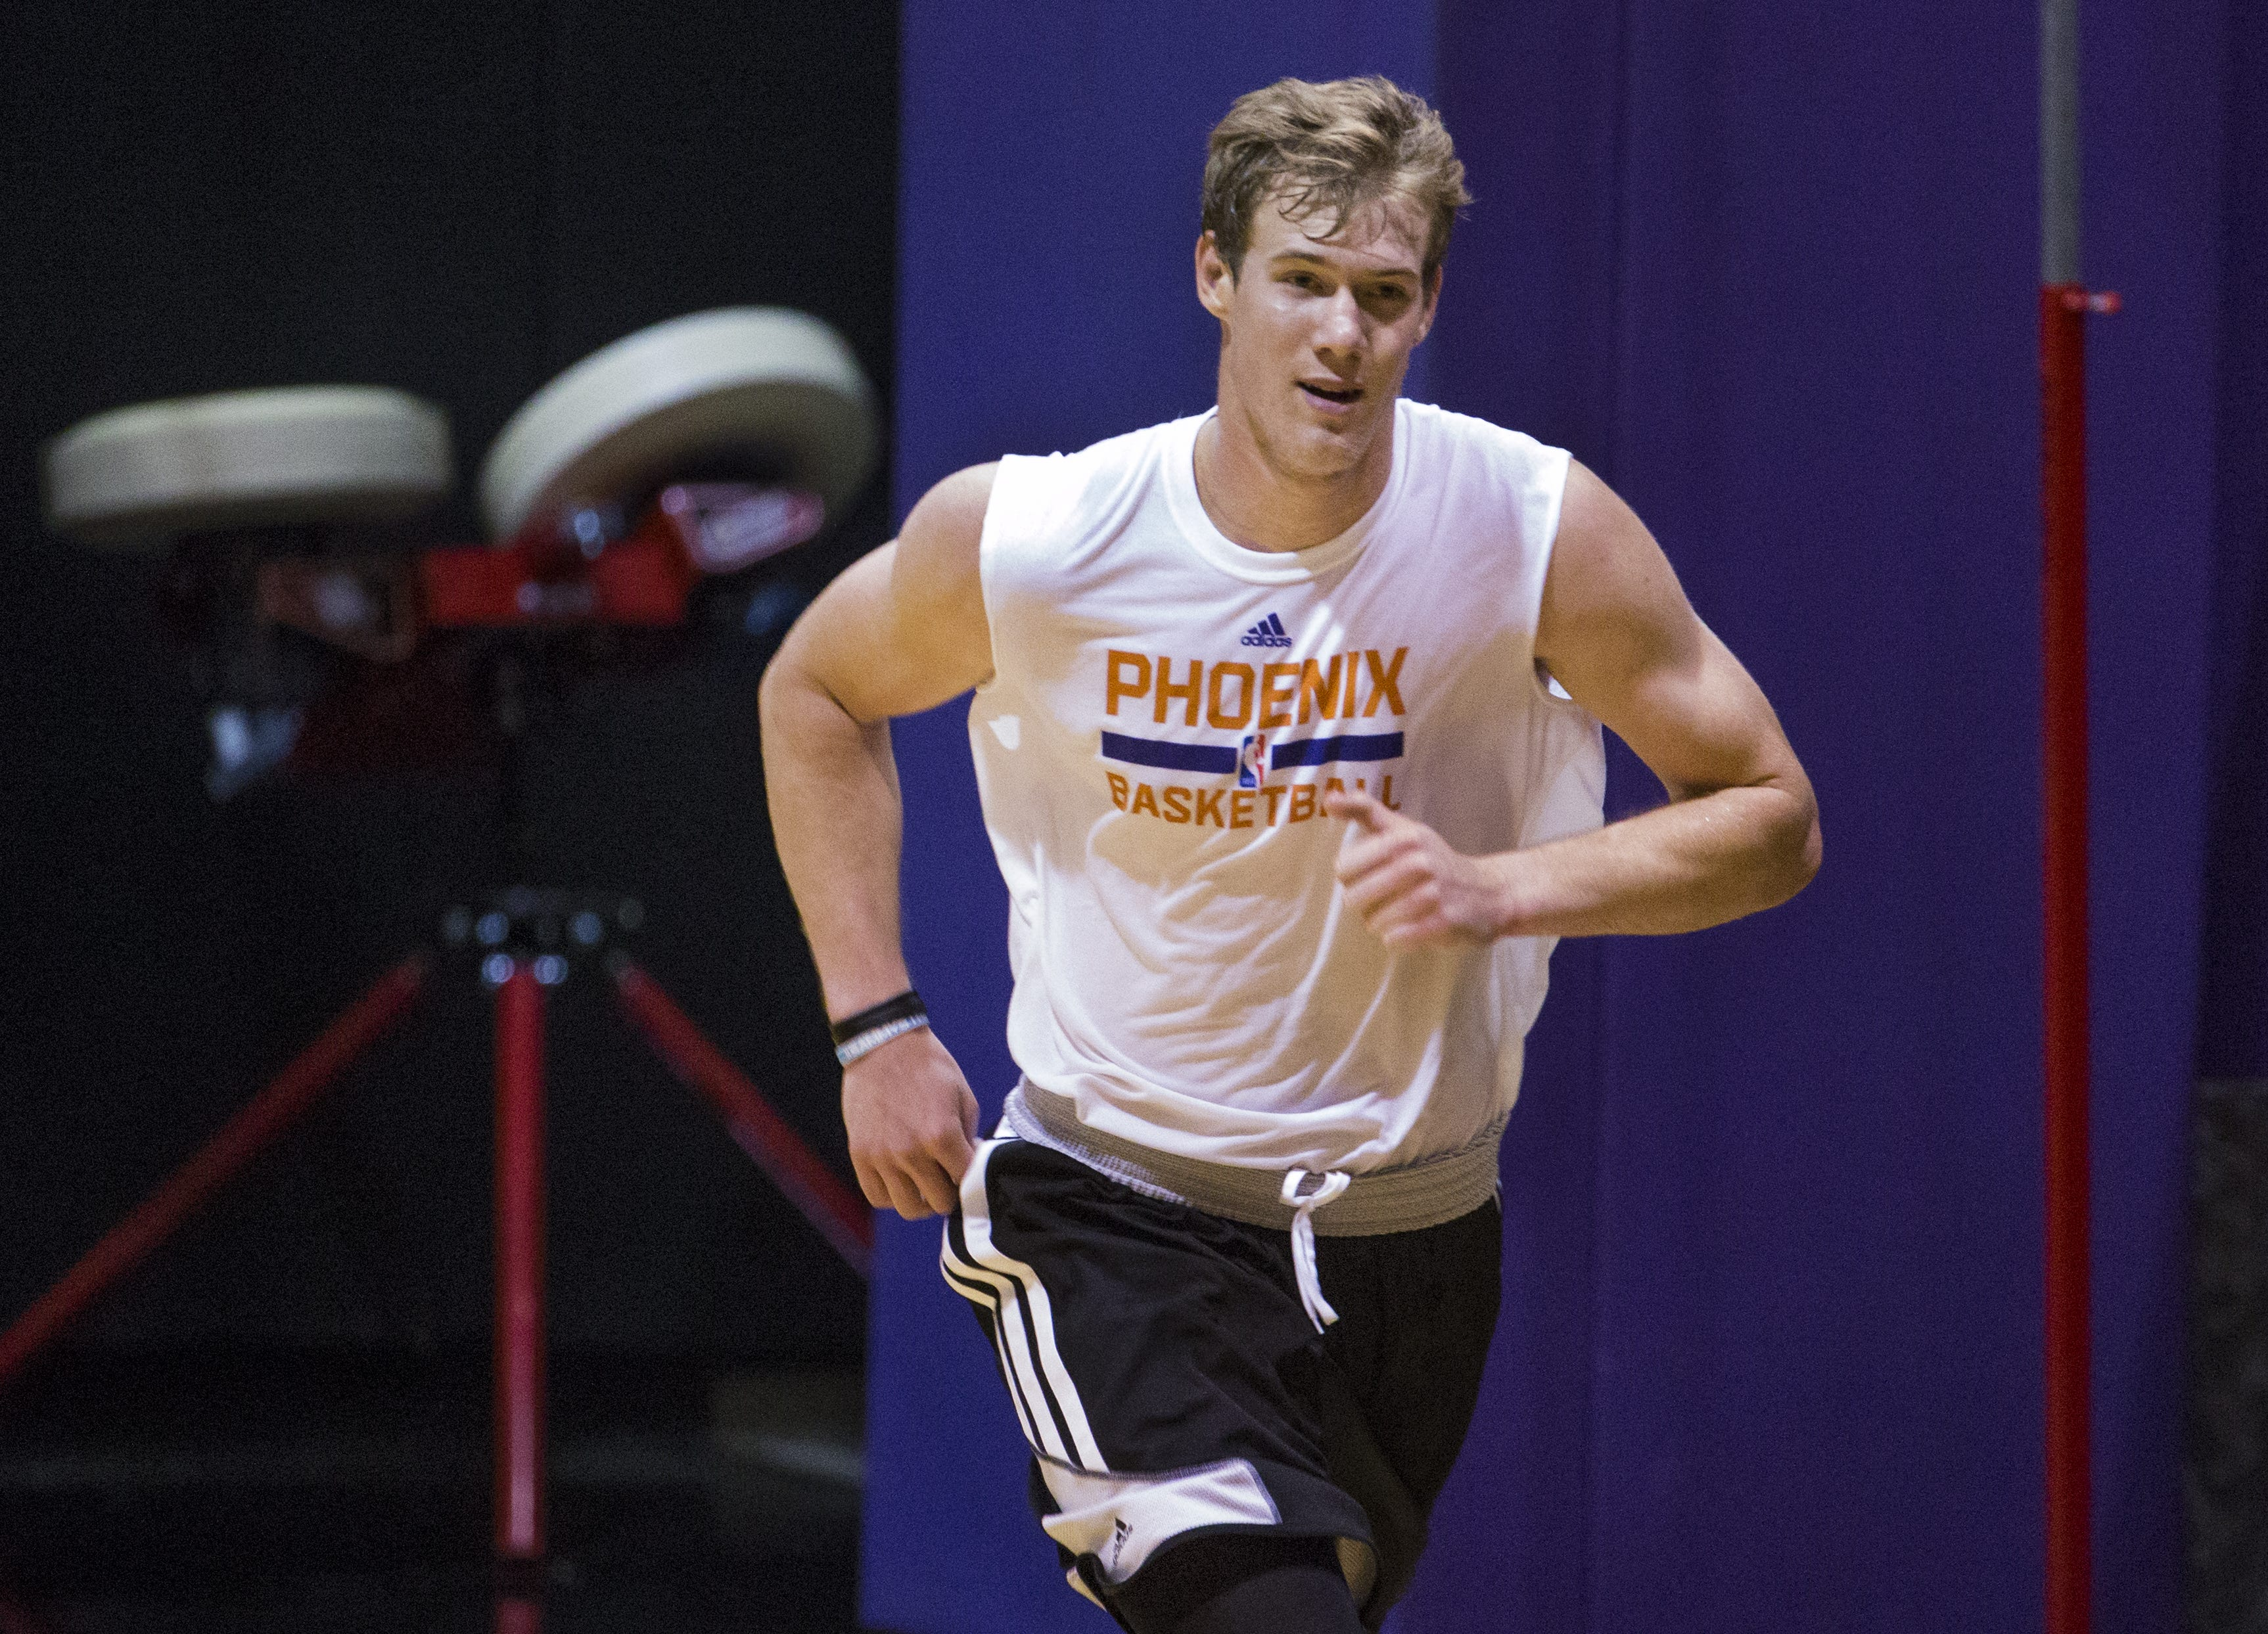 Scottsdale native, Brophy High grad Tim Kempton Jr. has pre-draft workout with Suns